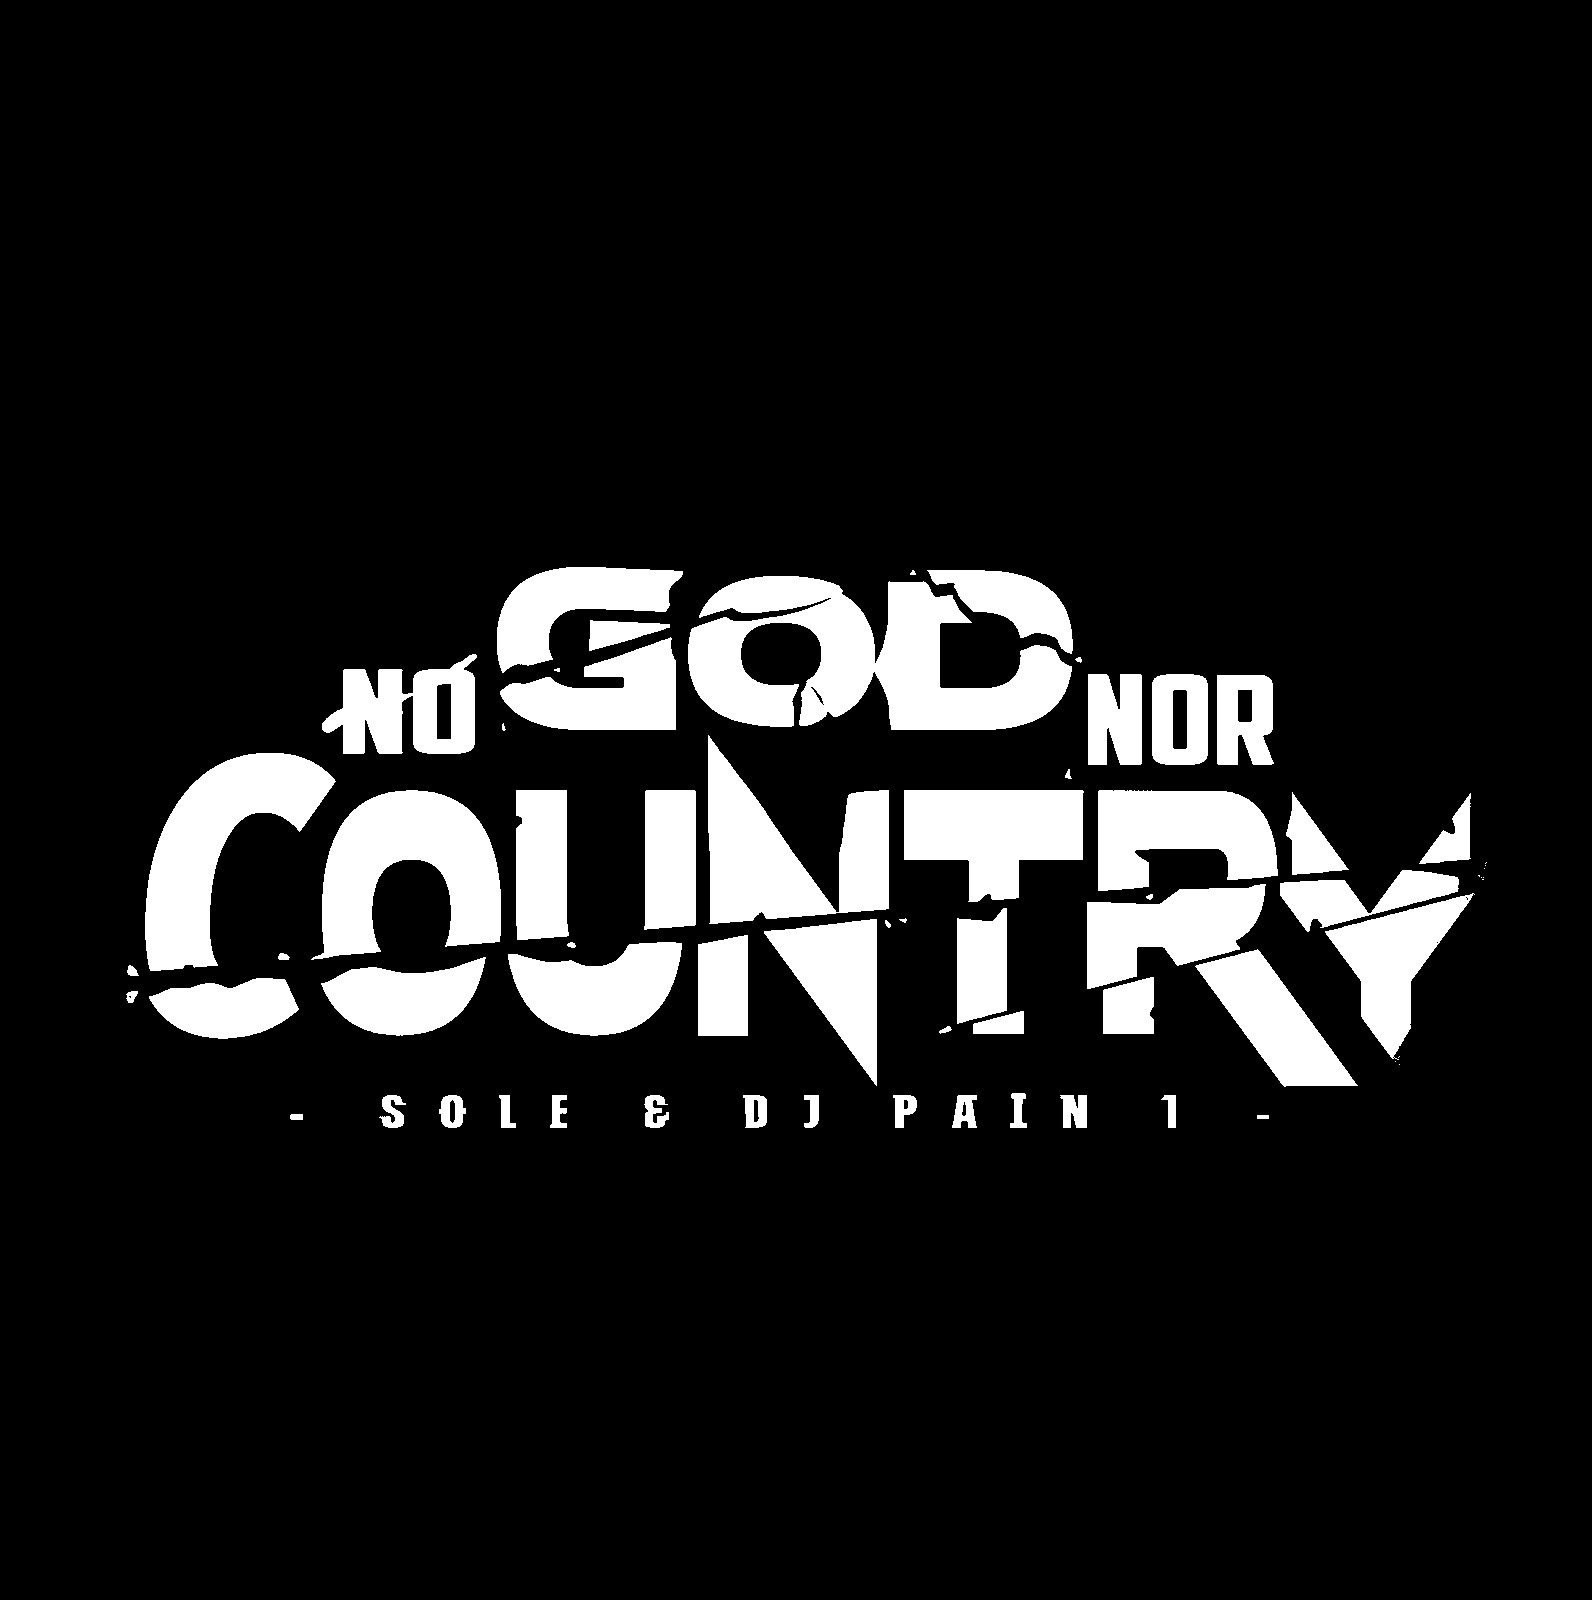 "Sole & DJ Pain 1  ""No God Nor Country"" coming this fall…  Pre-order now via Kickstarter"